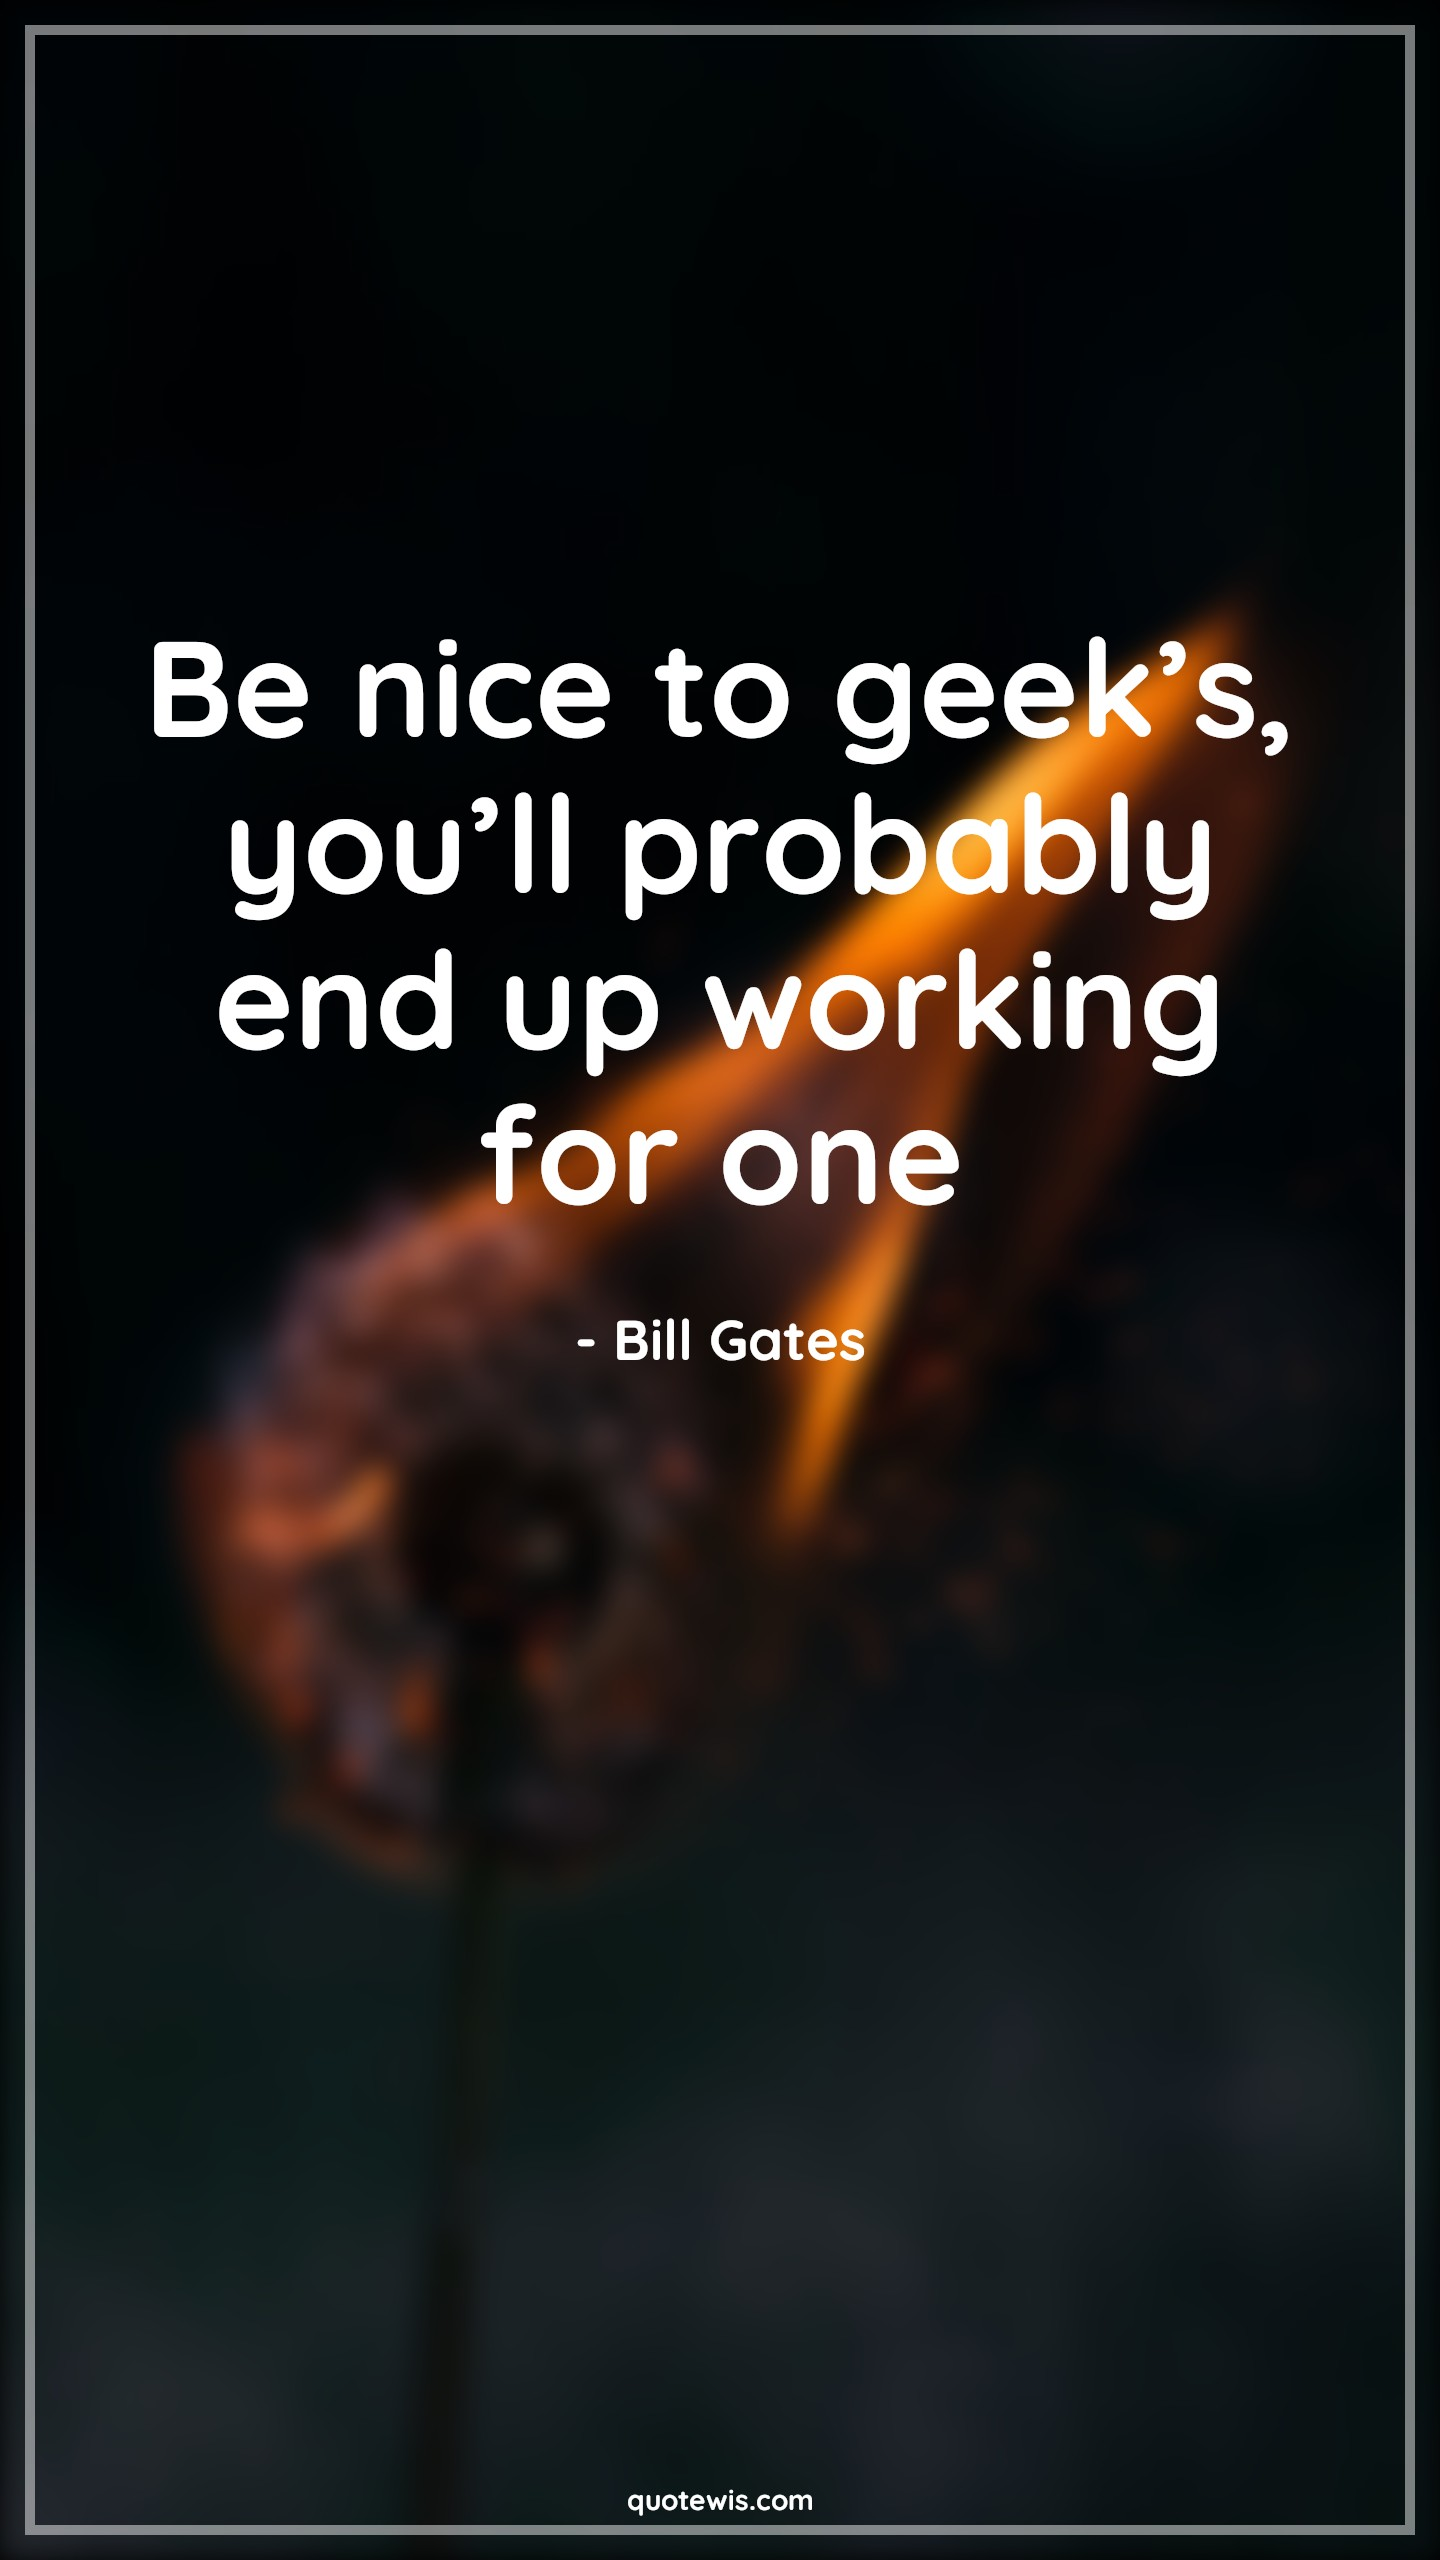 Be nice to geek's, you'll probably end up working for one